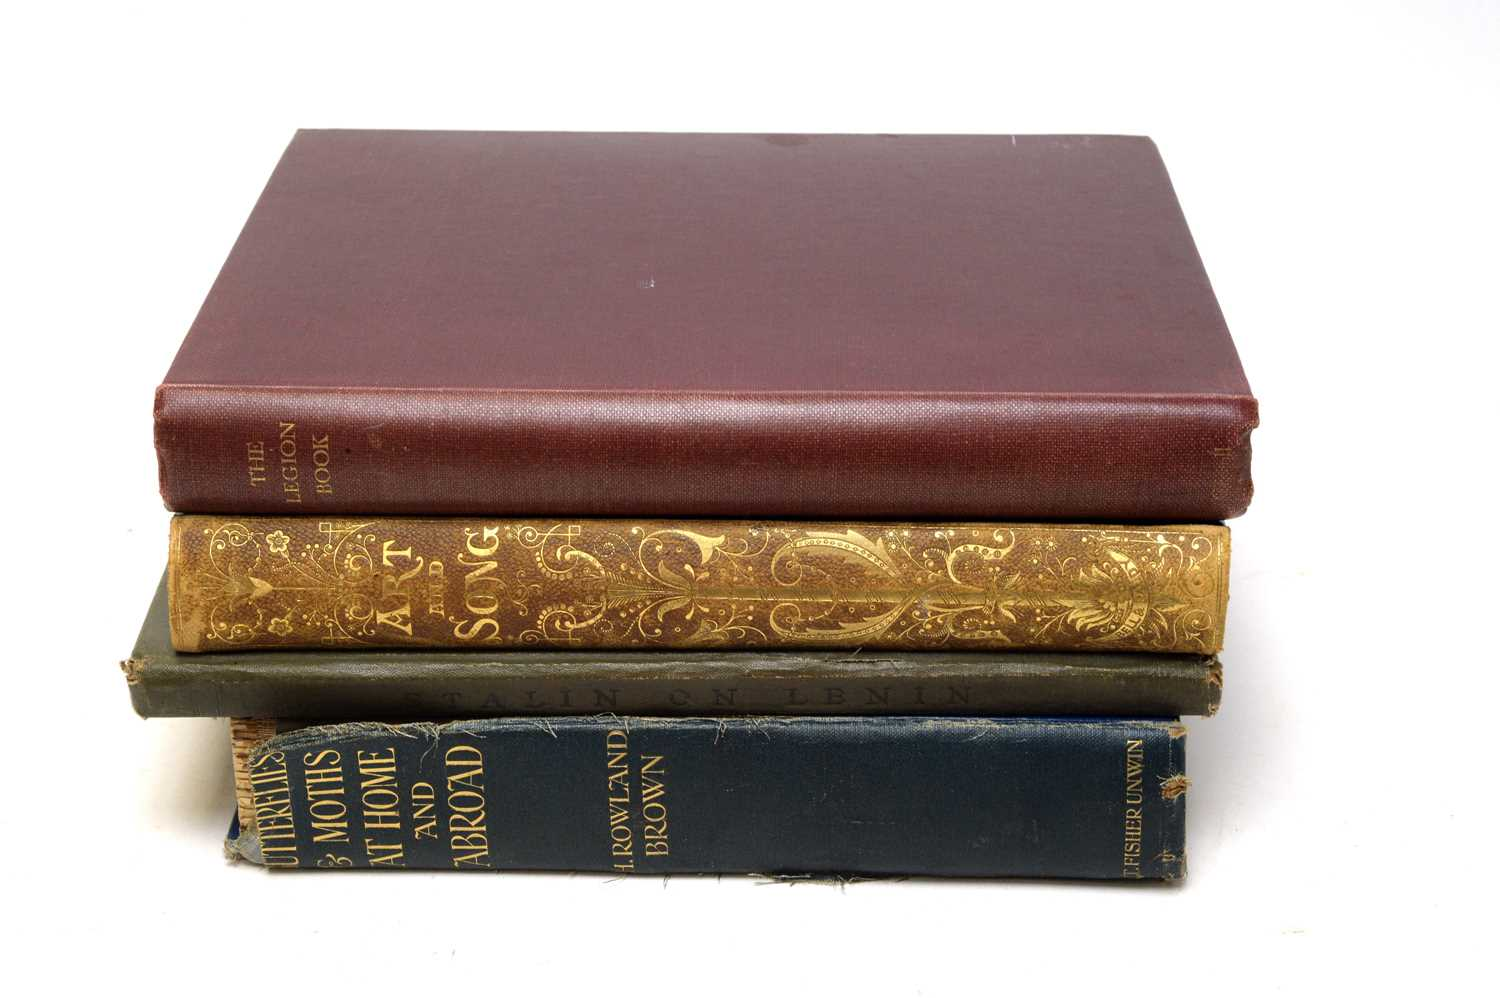 Four books on poetry and other subjects